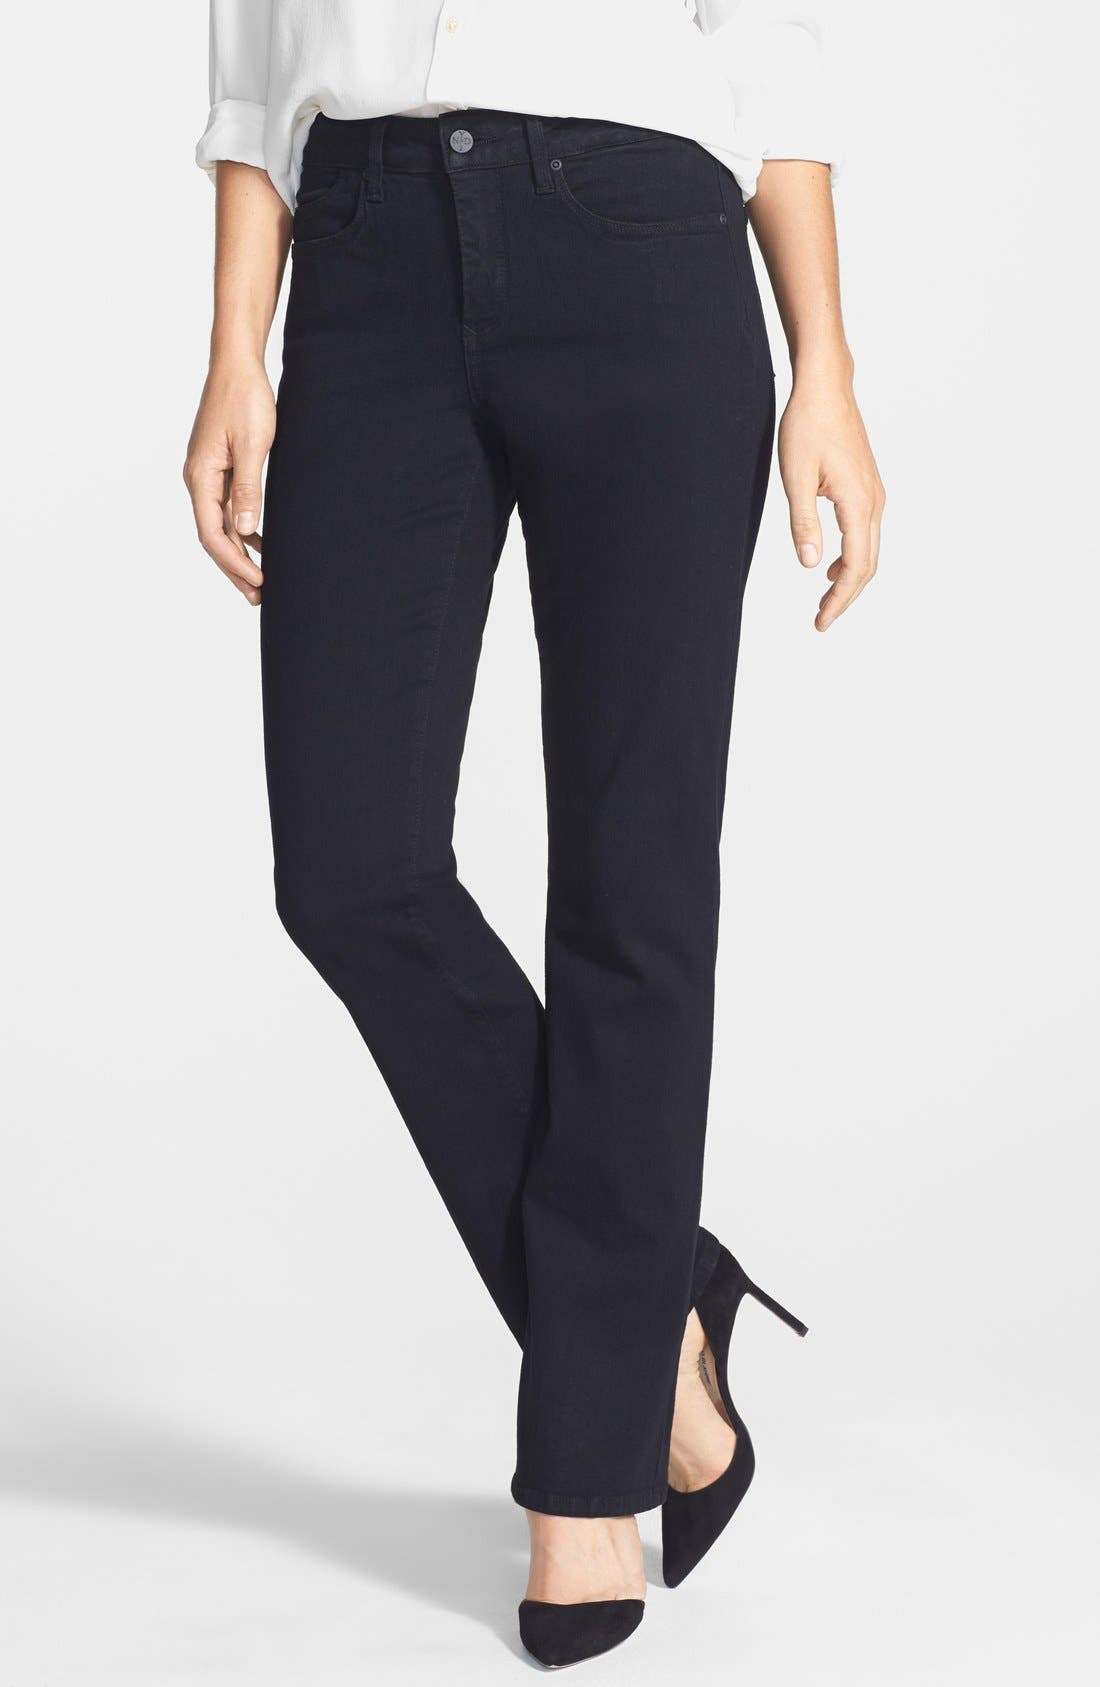 Alternate Image 1 Selected - NYDJ 'Billie' Stretch Mini Bootcut Jeans (Black) (Regular & Petite)